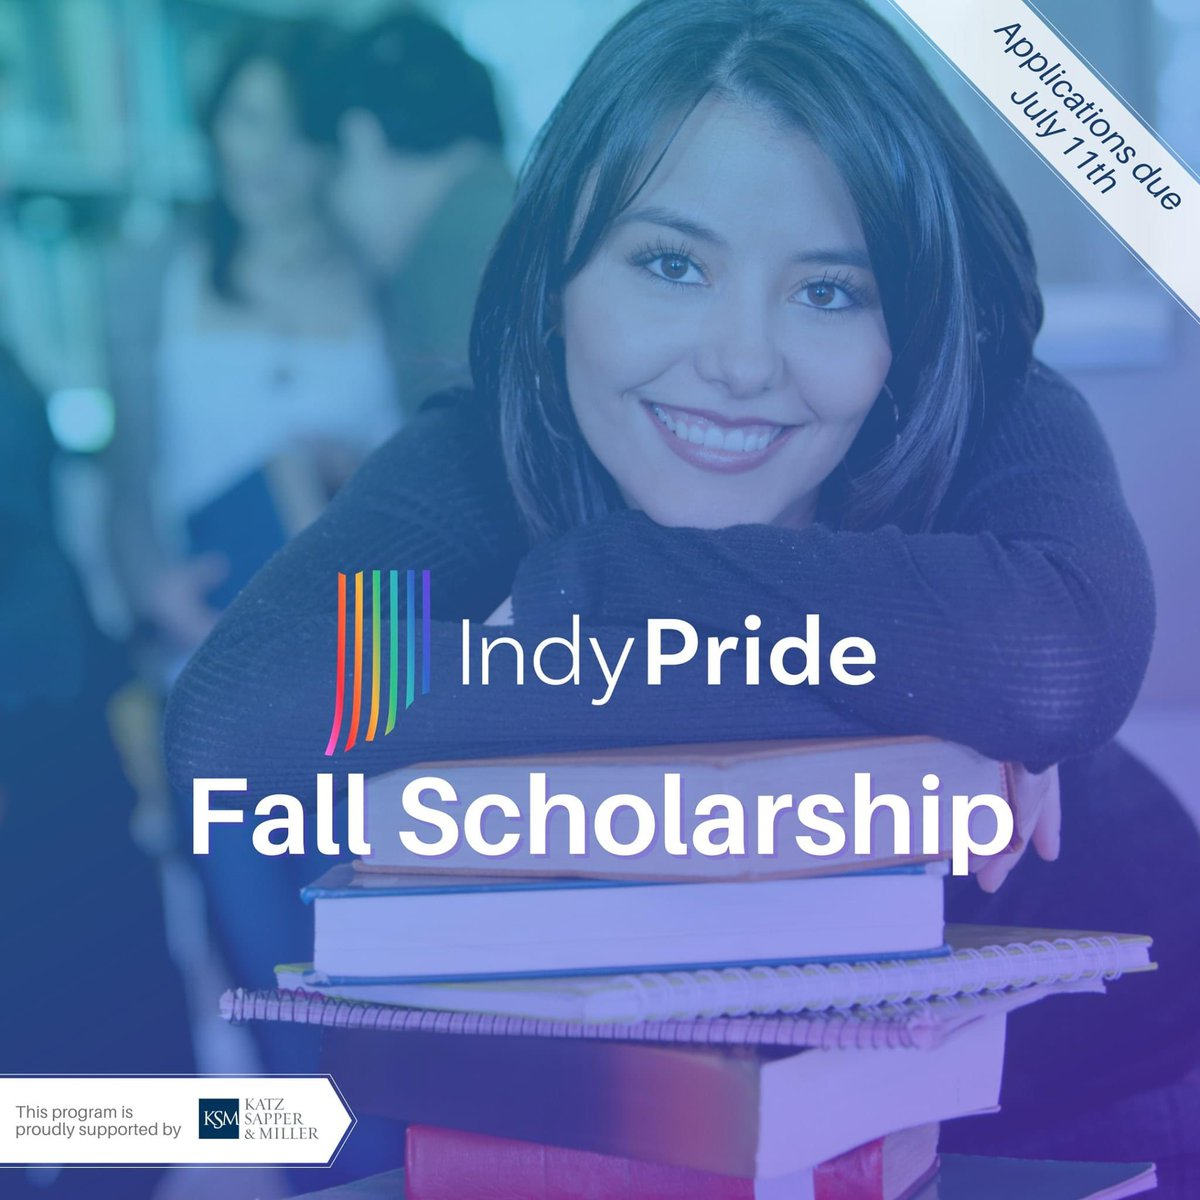 Our friends at Indy Pride have a wonderful educational scholarship opportunity. Please share with the students in your life! https://t.co/c657dkPkAf